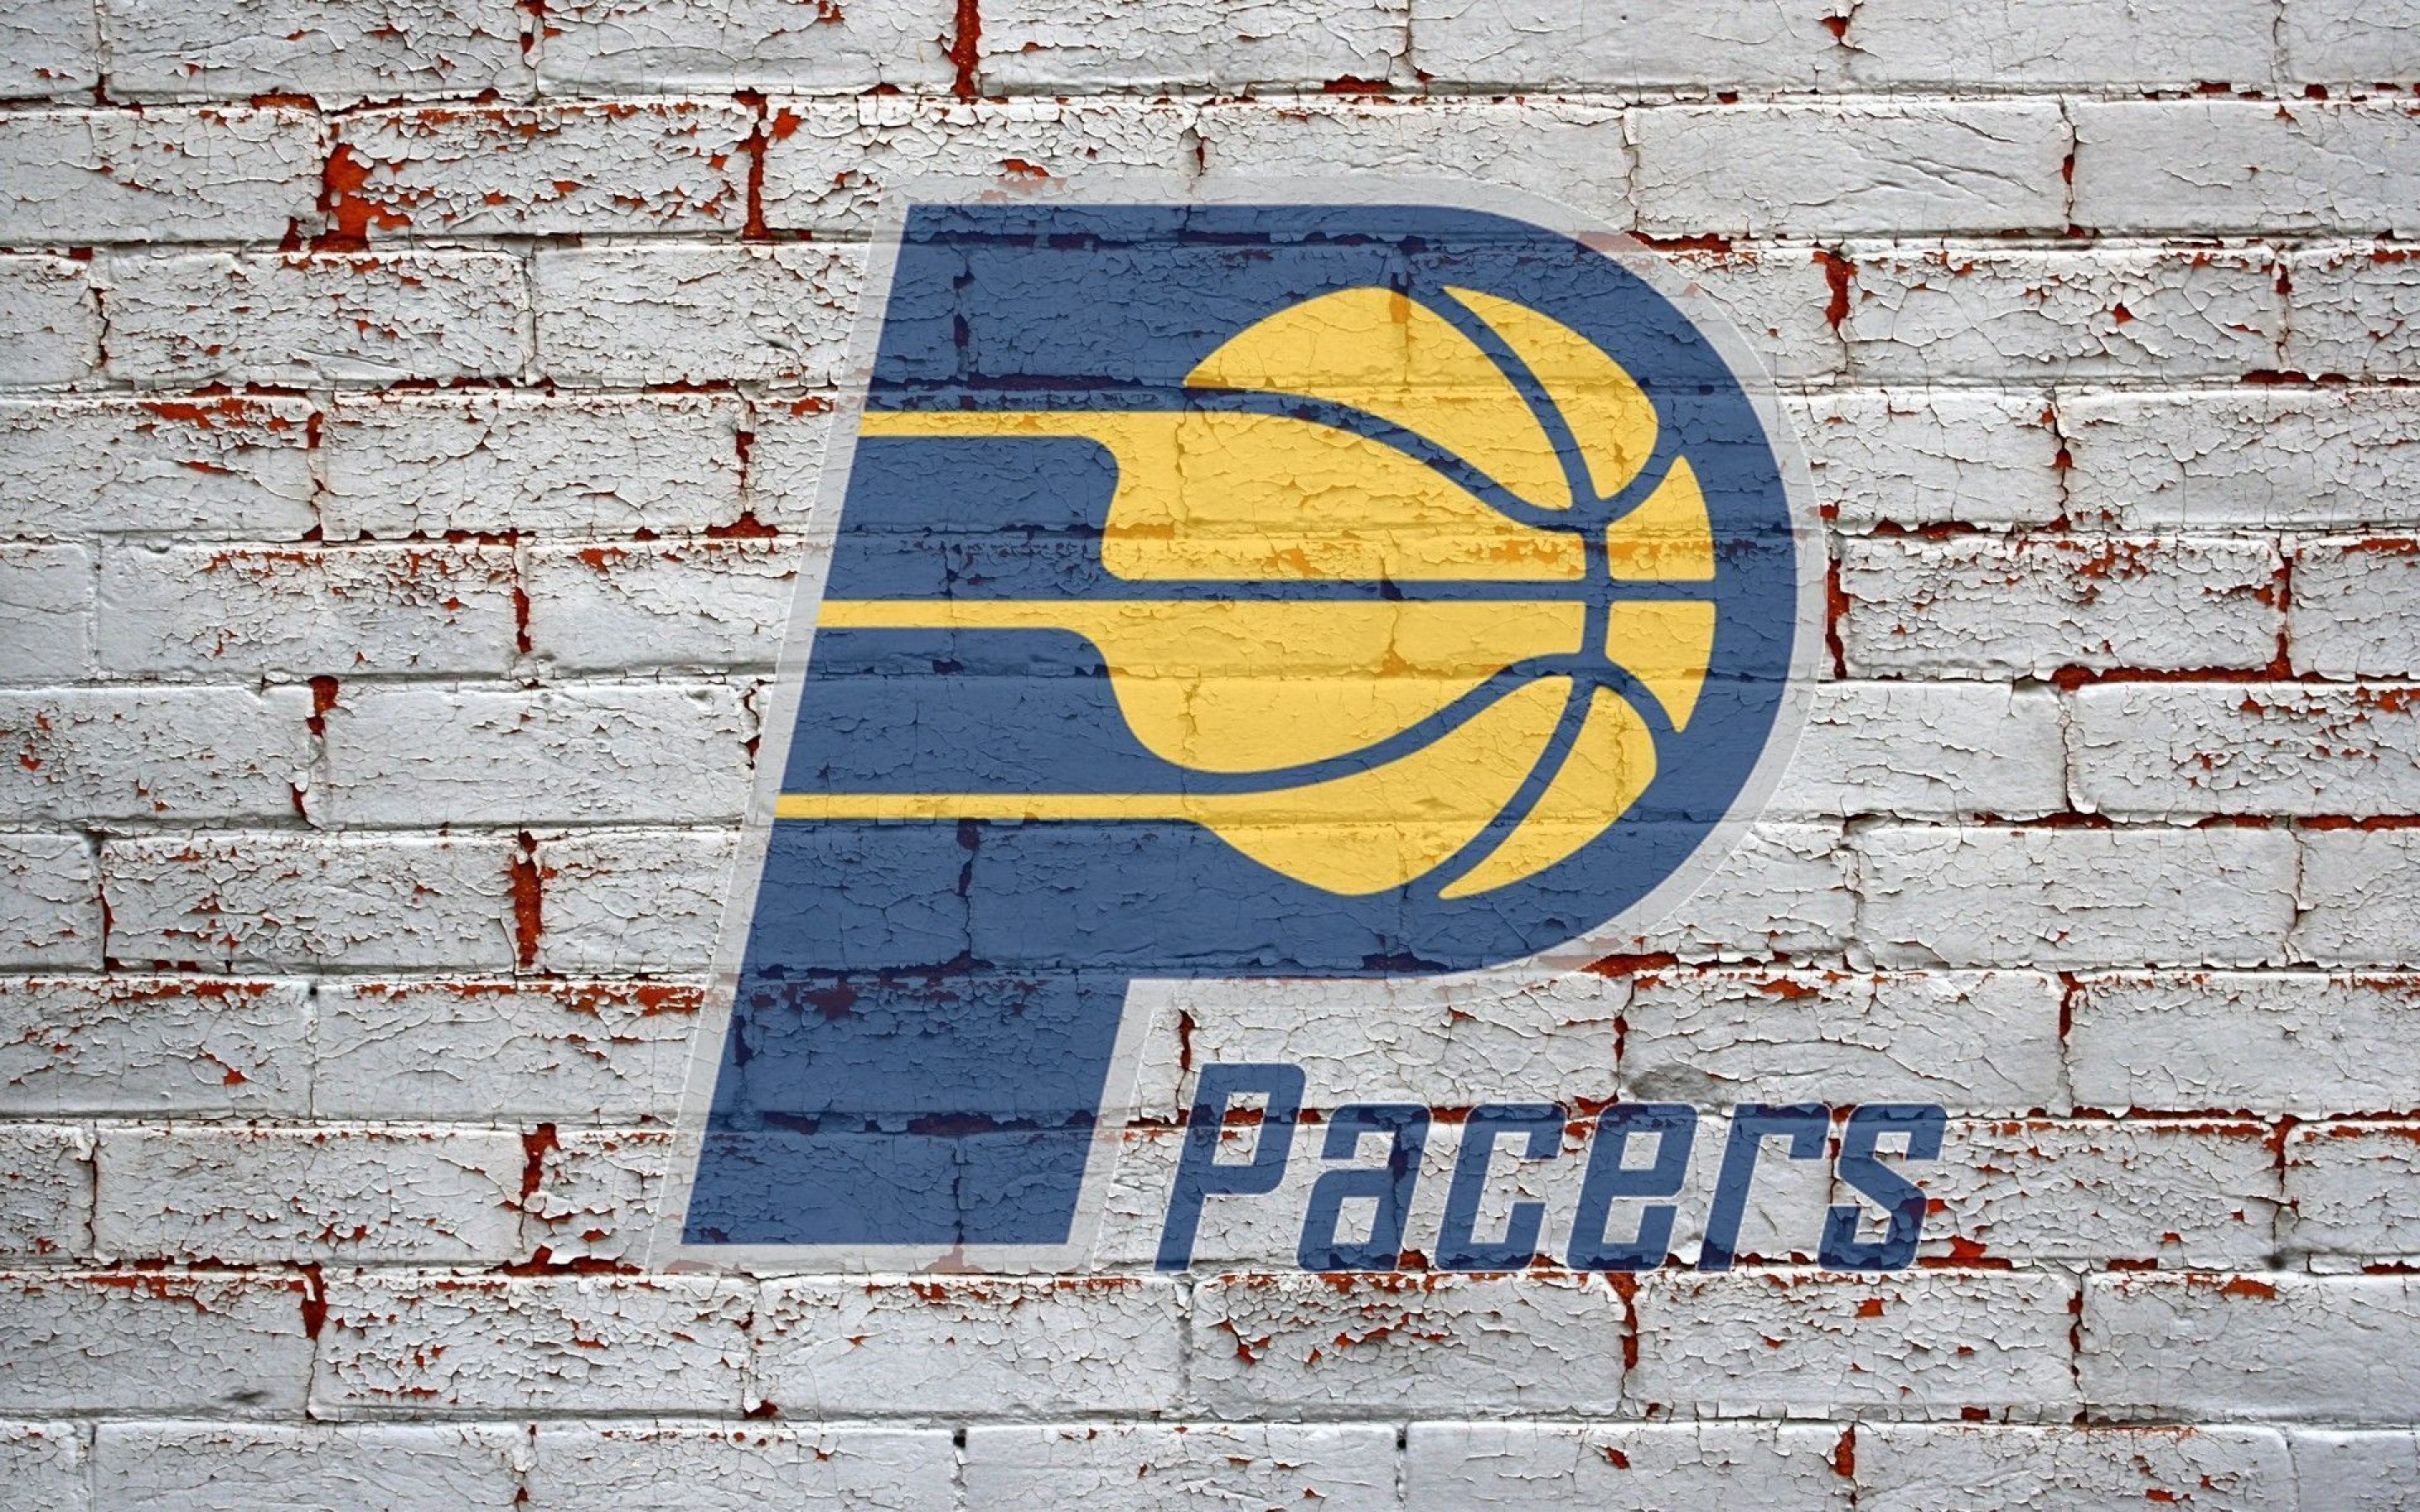 2880x1800 INDIANA PACERS nba basketball (14) wallpaper |  | 227042 |  WallpaperUP